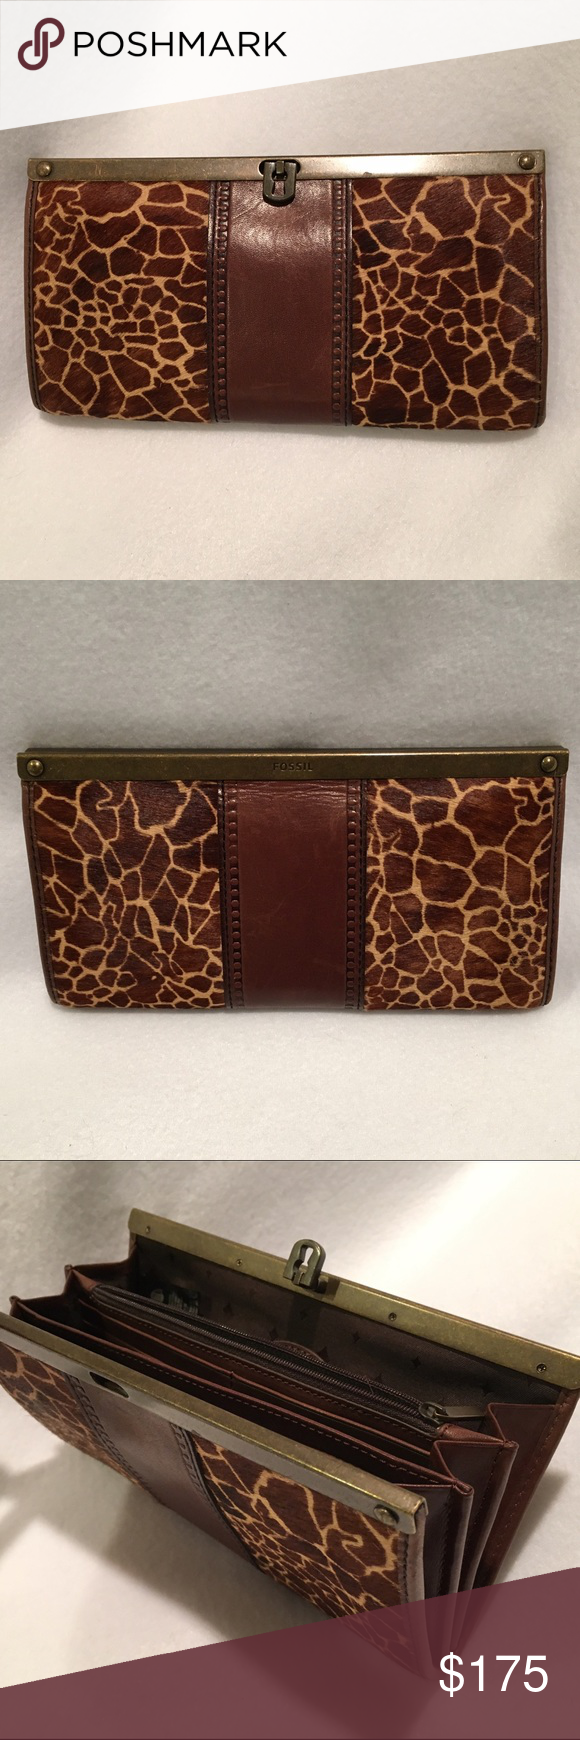 "Fossil Leather & Giraffe Print Pony Hair Wallet Fossil brown leather & Giraffe print pony hair / calfhair framed clutch / accordion wallet. Turnlock closure. 2 dividers, 1 zippered pocket, lots of credit card / ID slots, checkbook / cash slips. Lots of room. Will even fit an iPhone 6s. Like new - Perfect condition. Dimensions approx: 8"" x 4.5"". Matches Fossil Giraffe print shoes and Crossbody bag in nearby listings.  BUNDLE AND SAVE 10%  Fossil Bags Wallets"